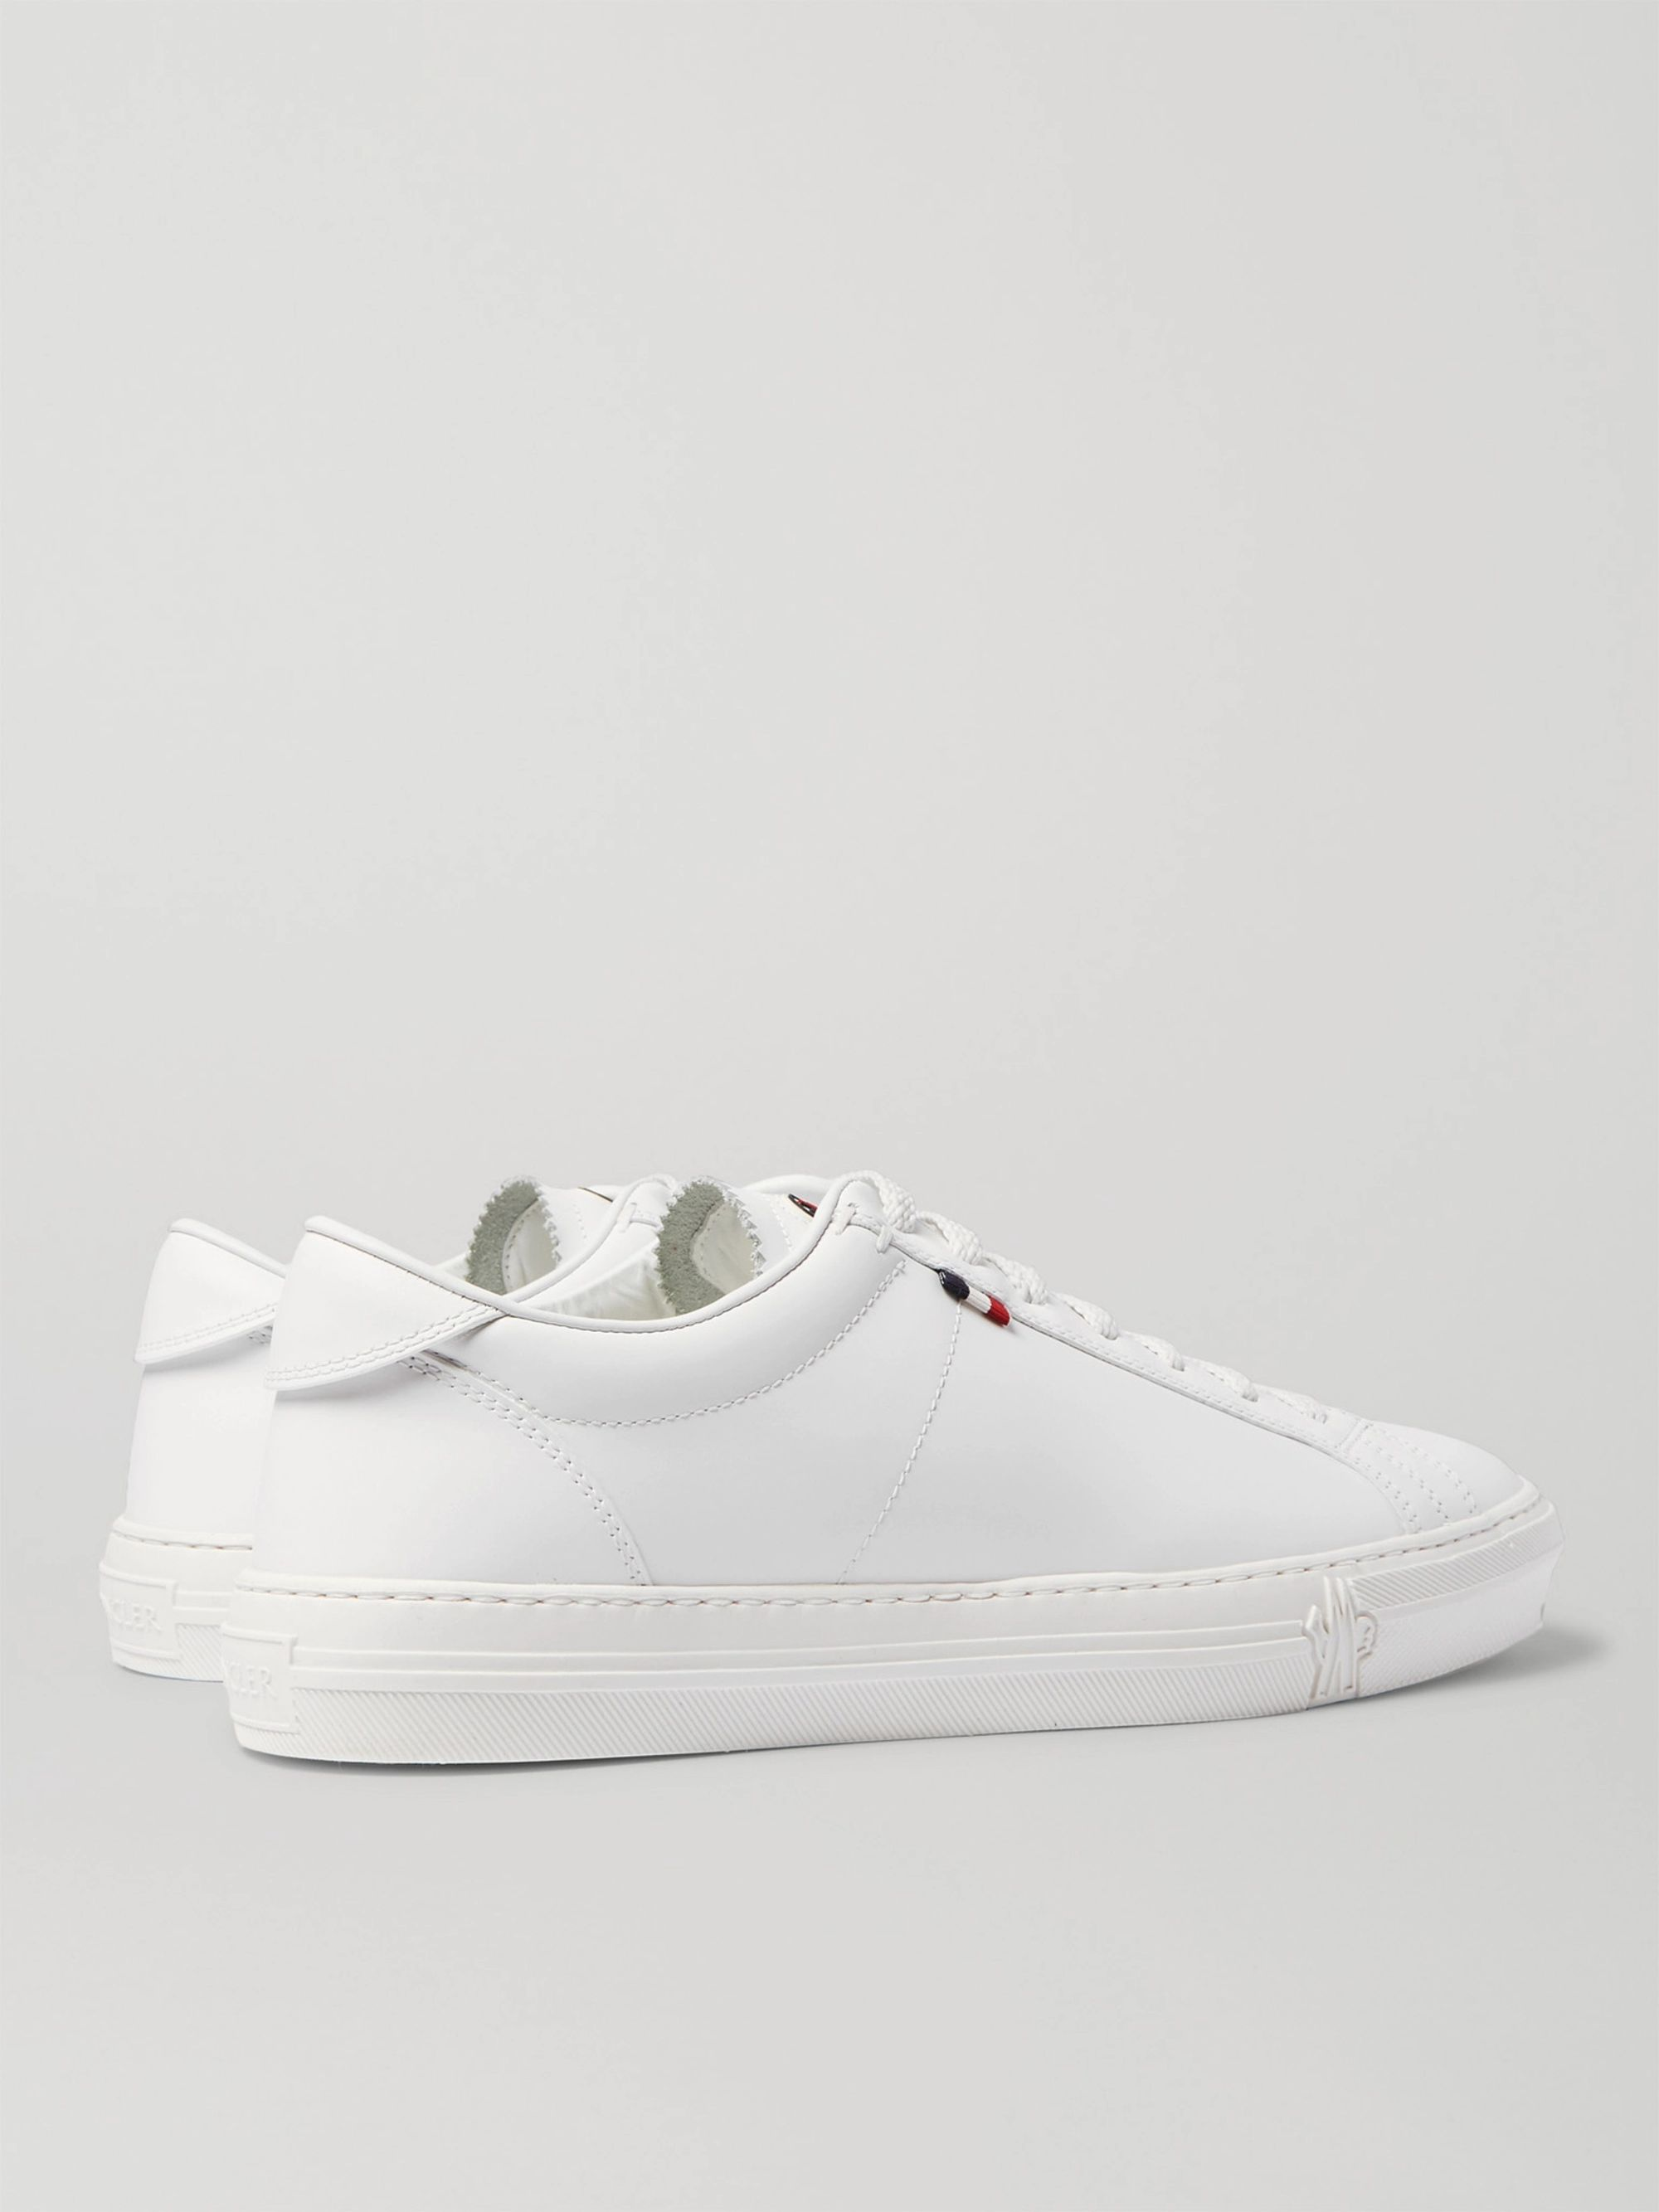 Moncler Monaco Leather Sneakers